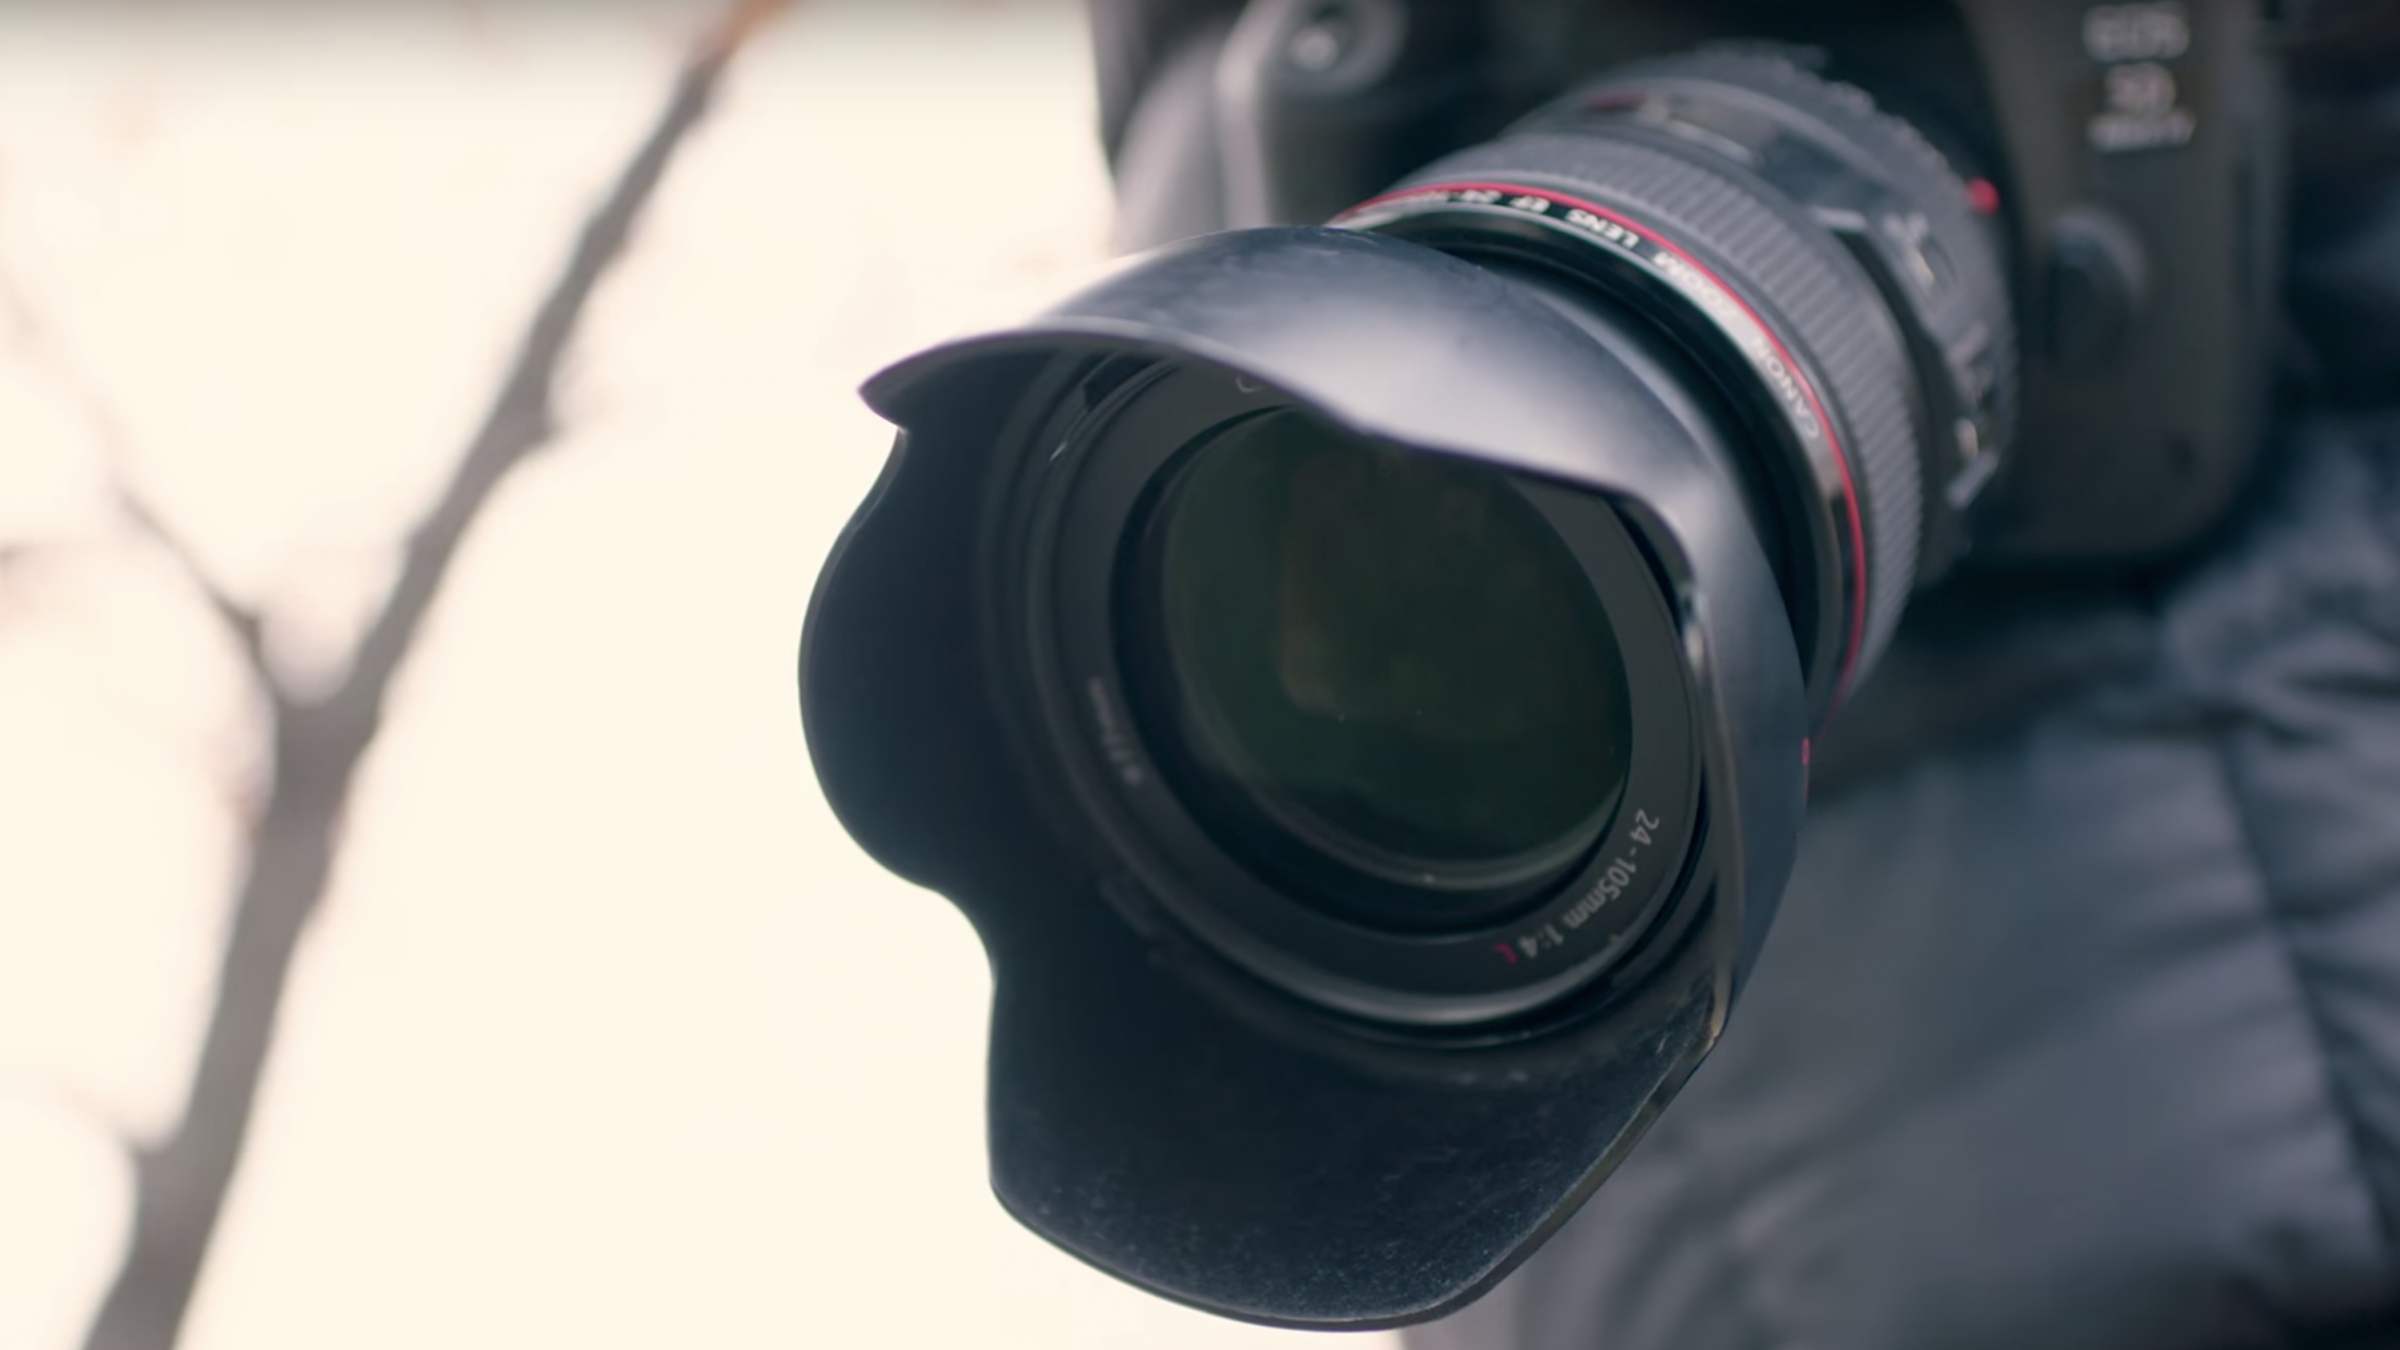 What Are Lens Hoods and Why Should You Use One?